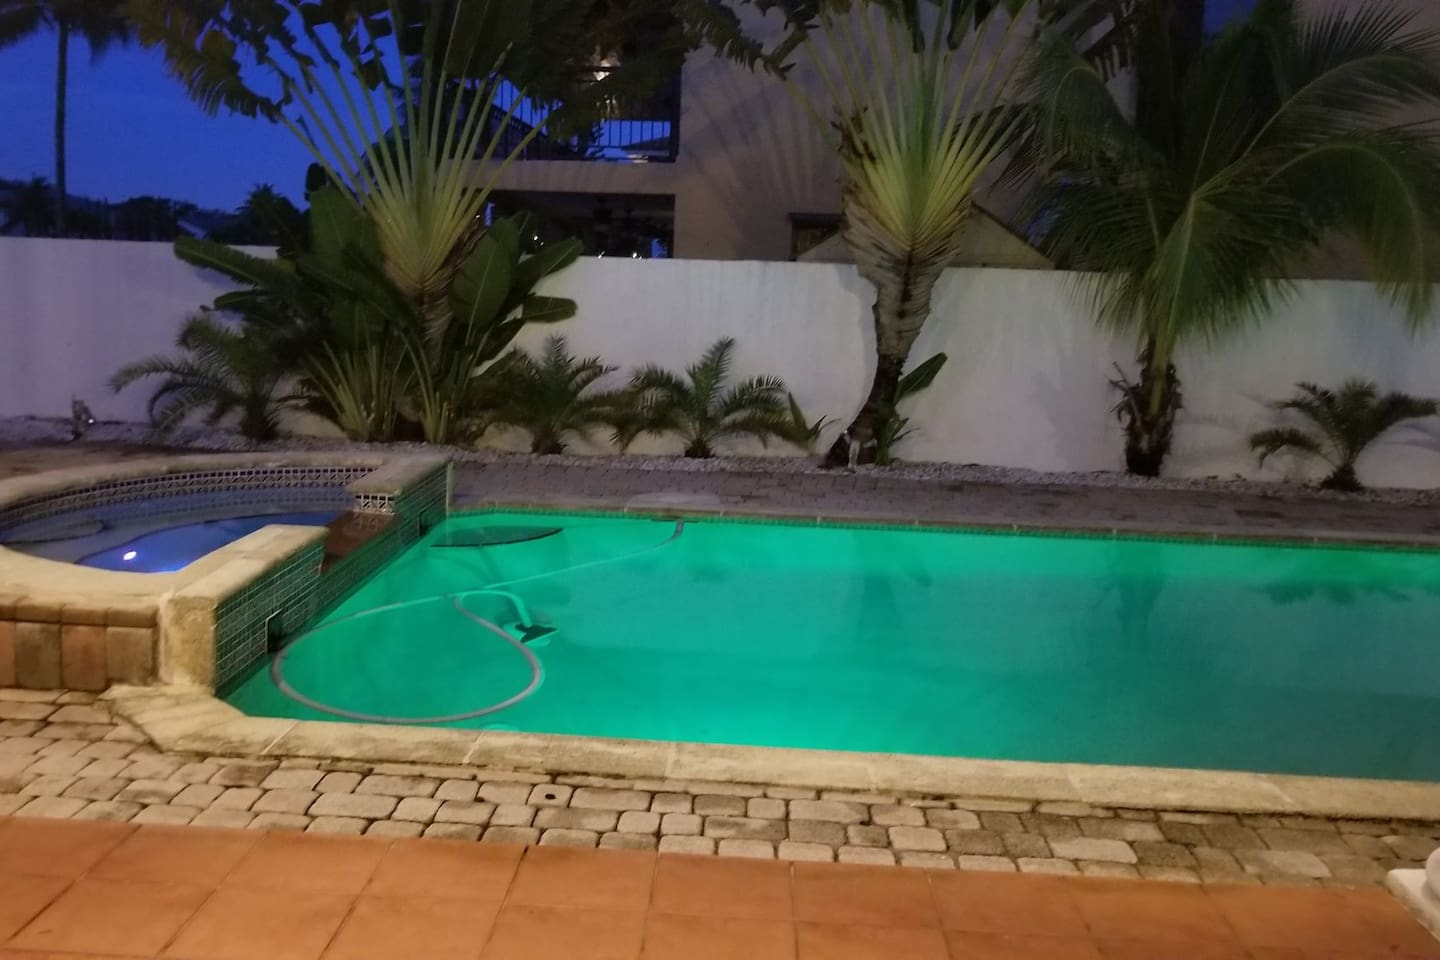 Pool and spa tub lit up at night